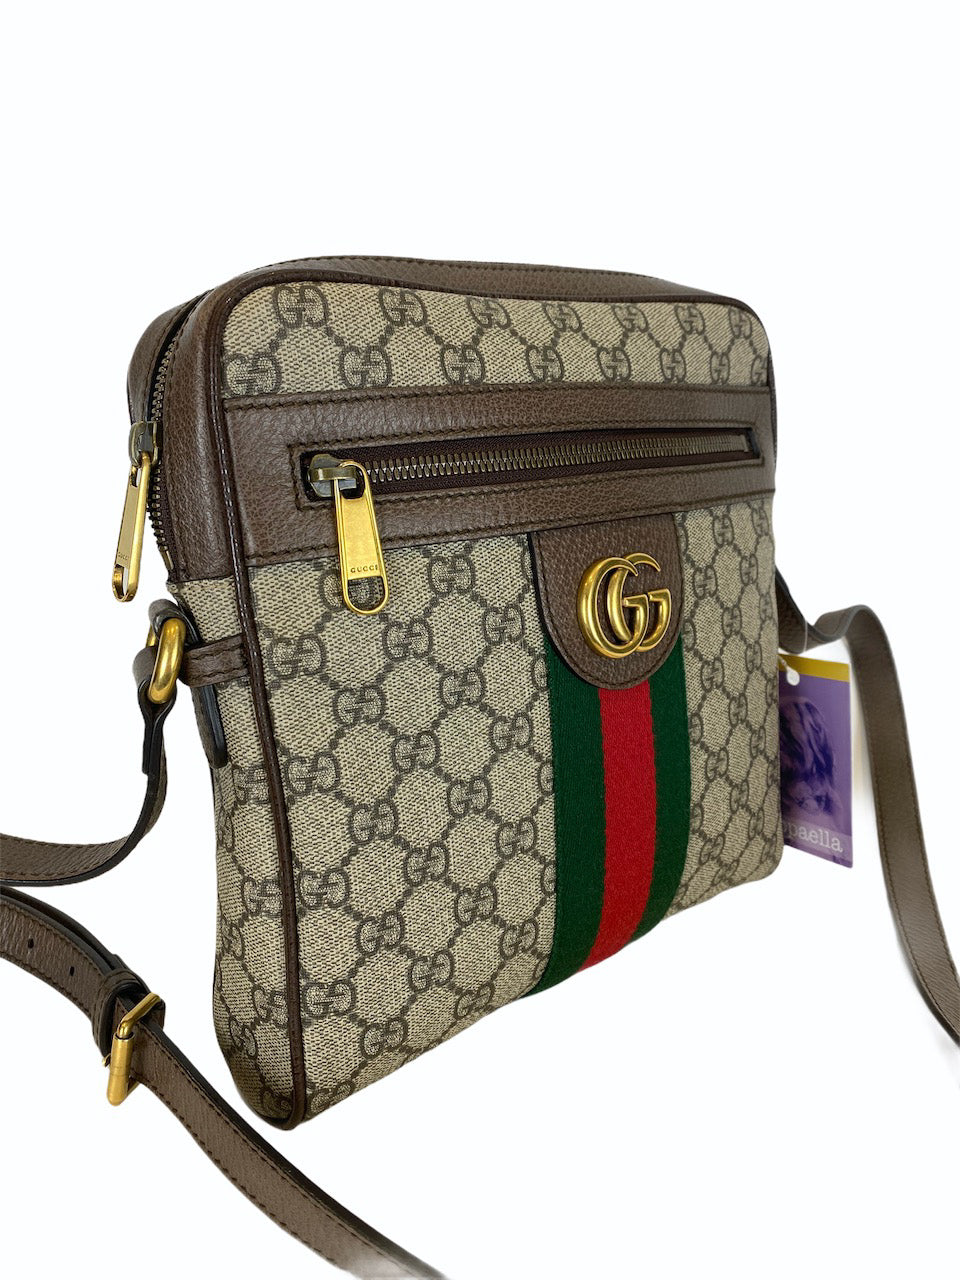 Gucci Ophidia GG Small Crossbody